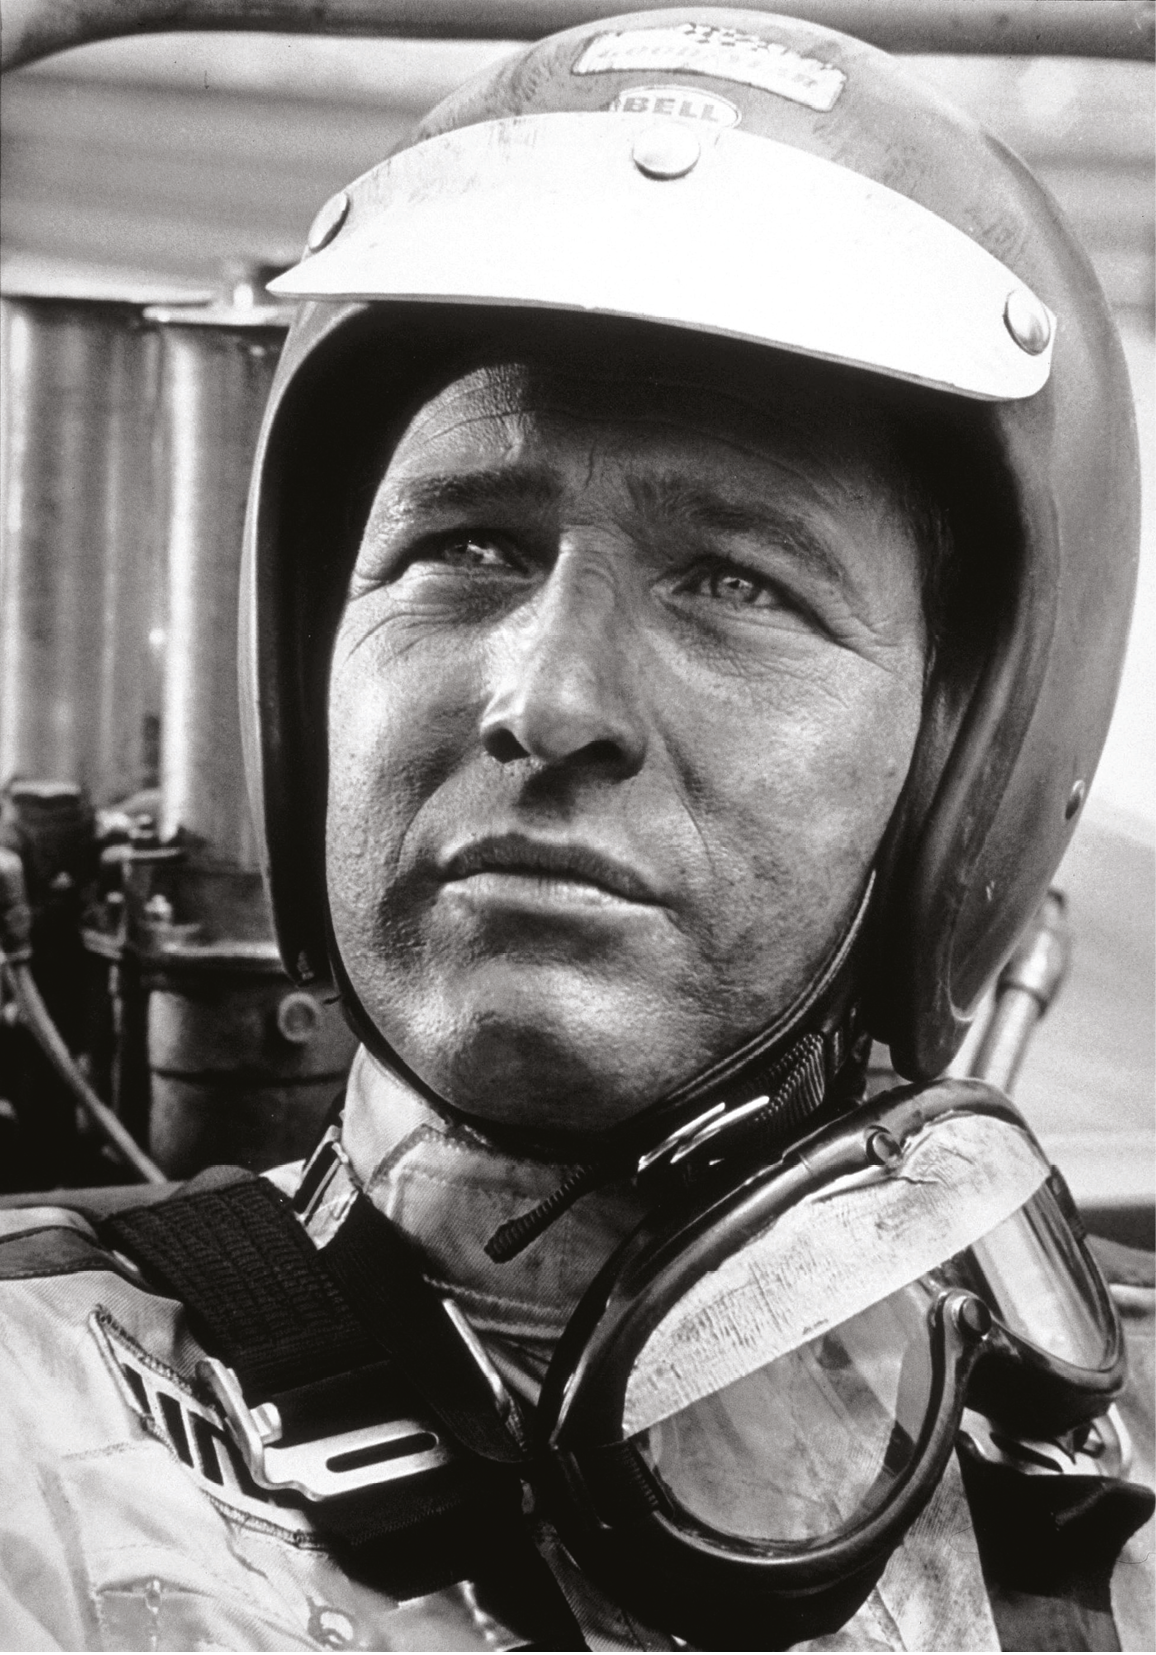 """The look of eagles in his eyes"" – Newman at the wheel, as described by co-star Wagner"